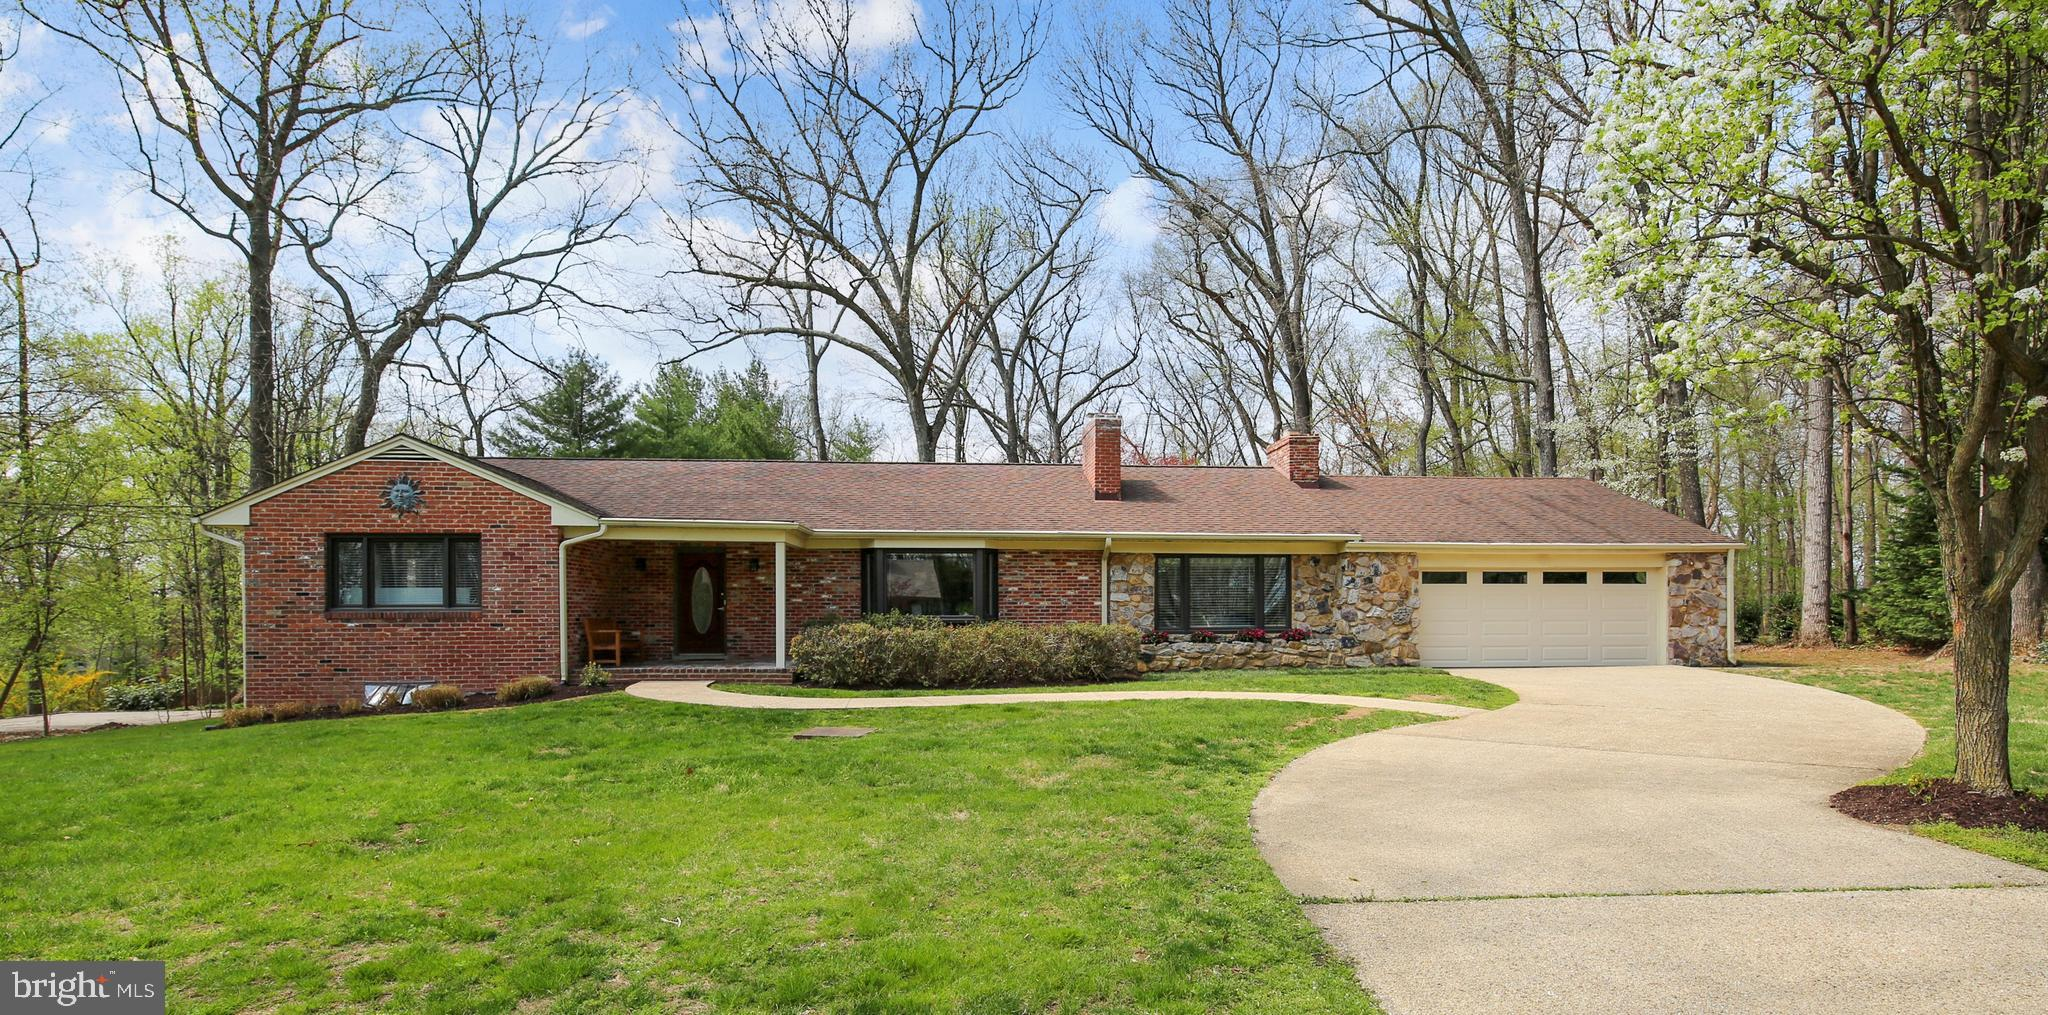 Welcome to this beautiful 3 Bedroom, 3.5 Bath updated & expanded Rambler located in sought-after Gra